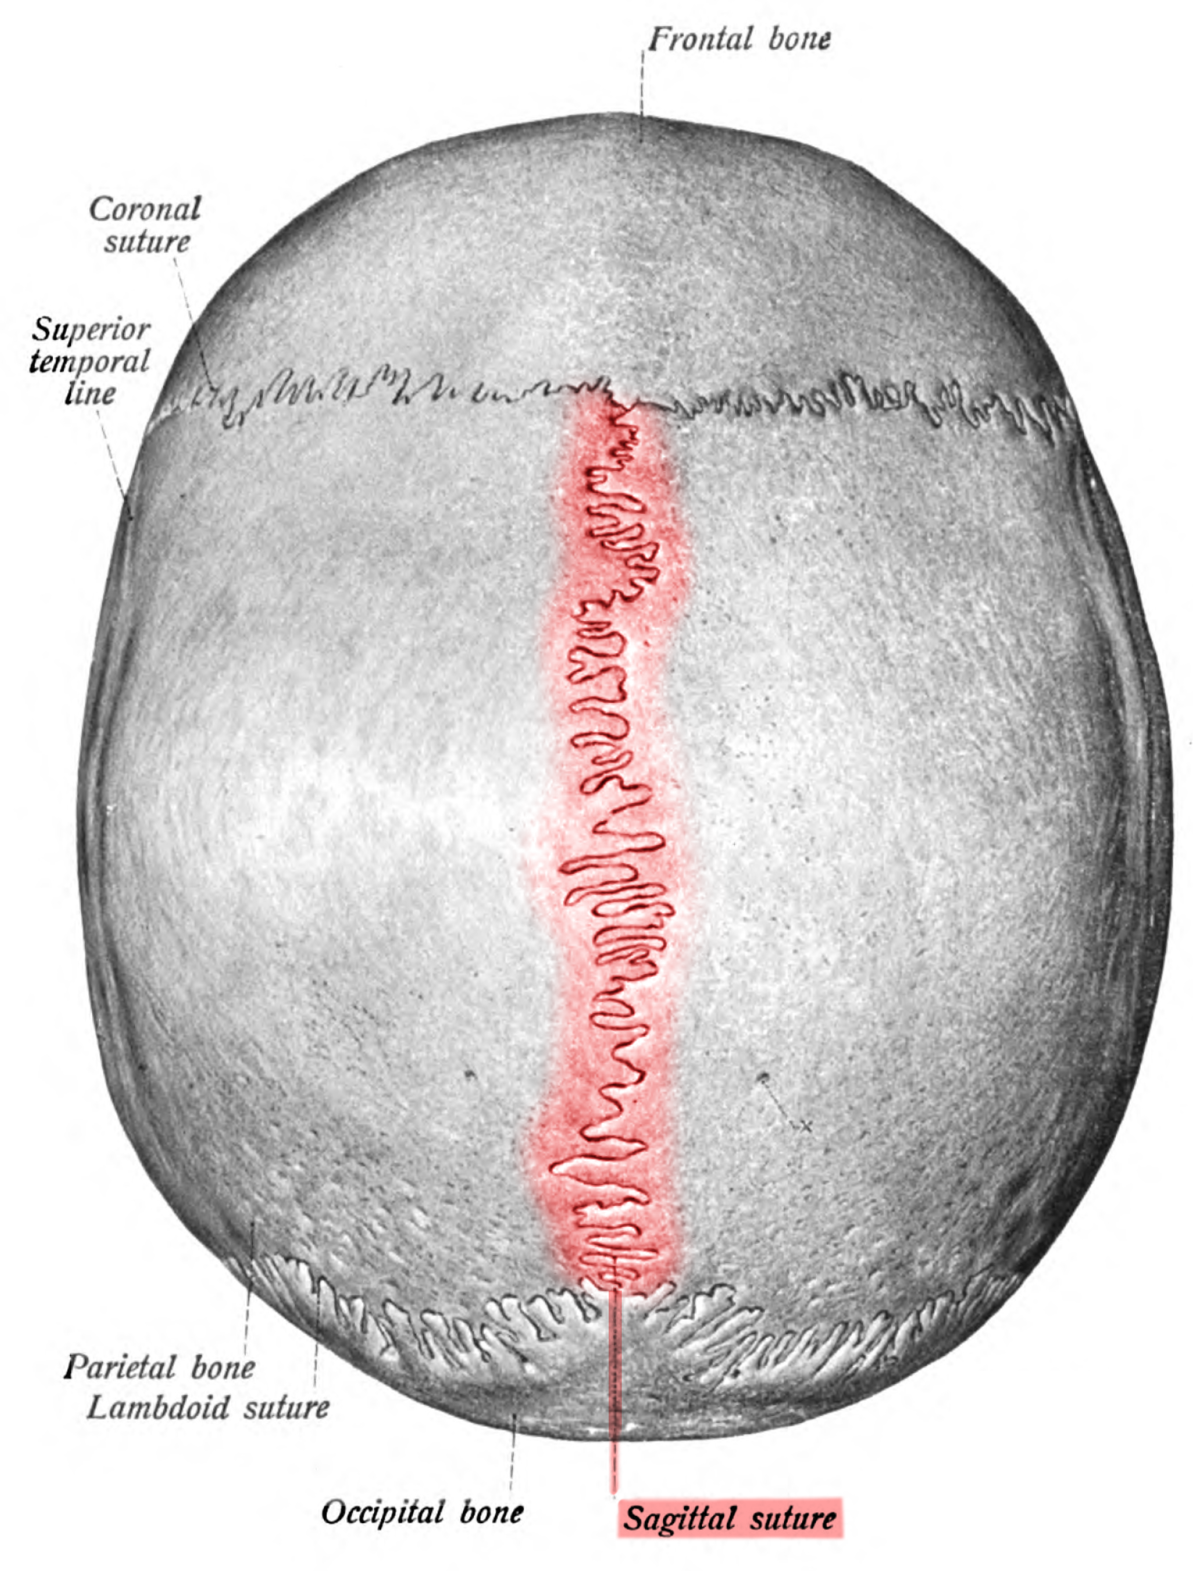 Sagittal suture - Wikipedia